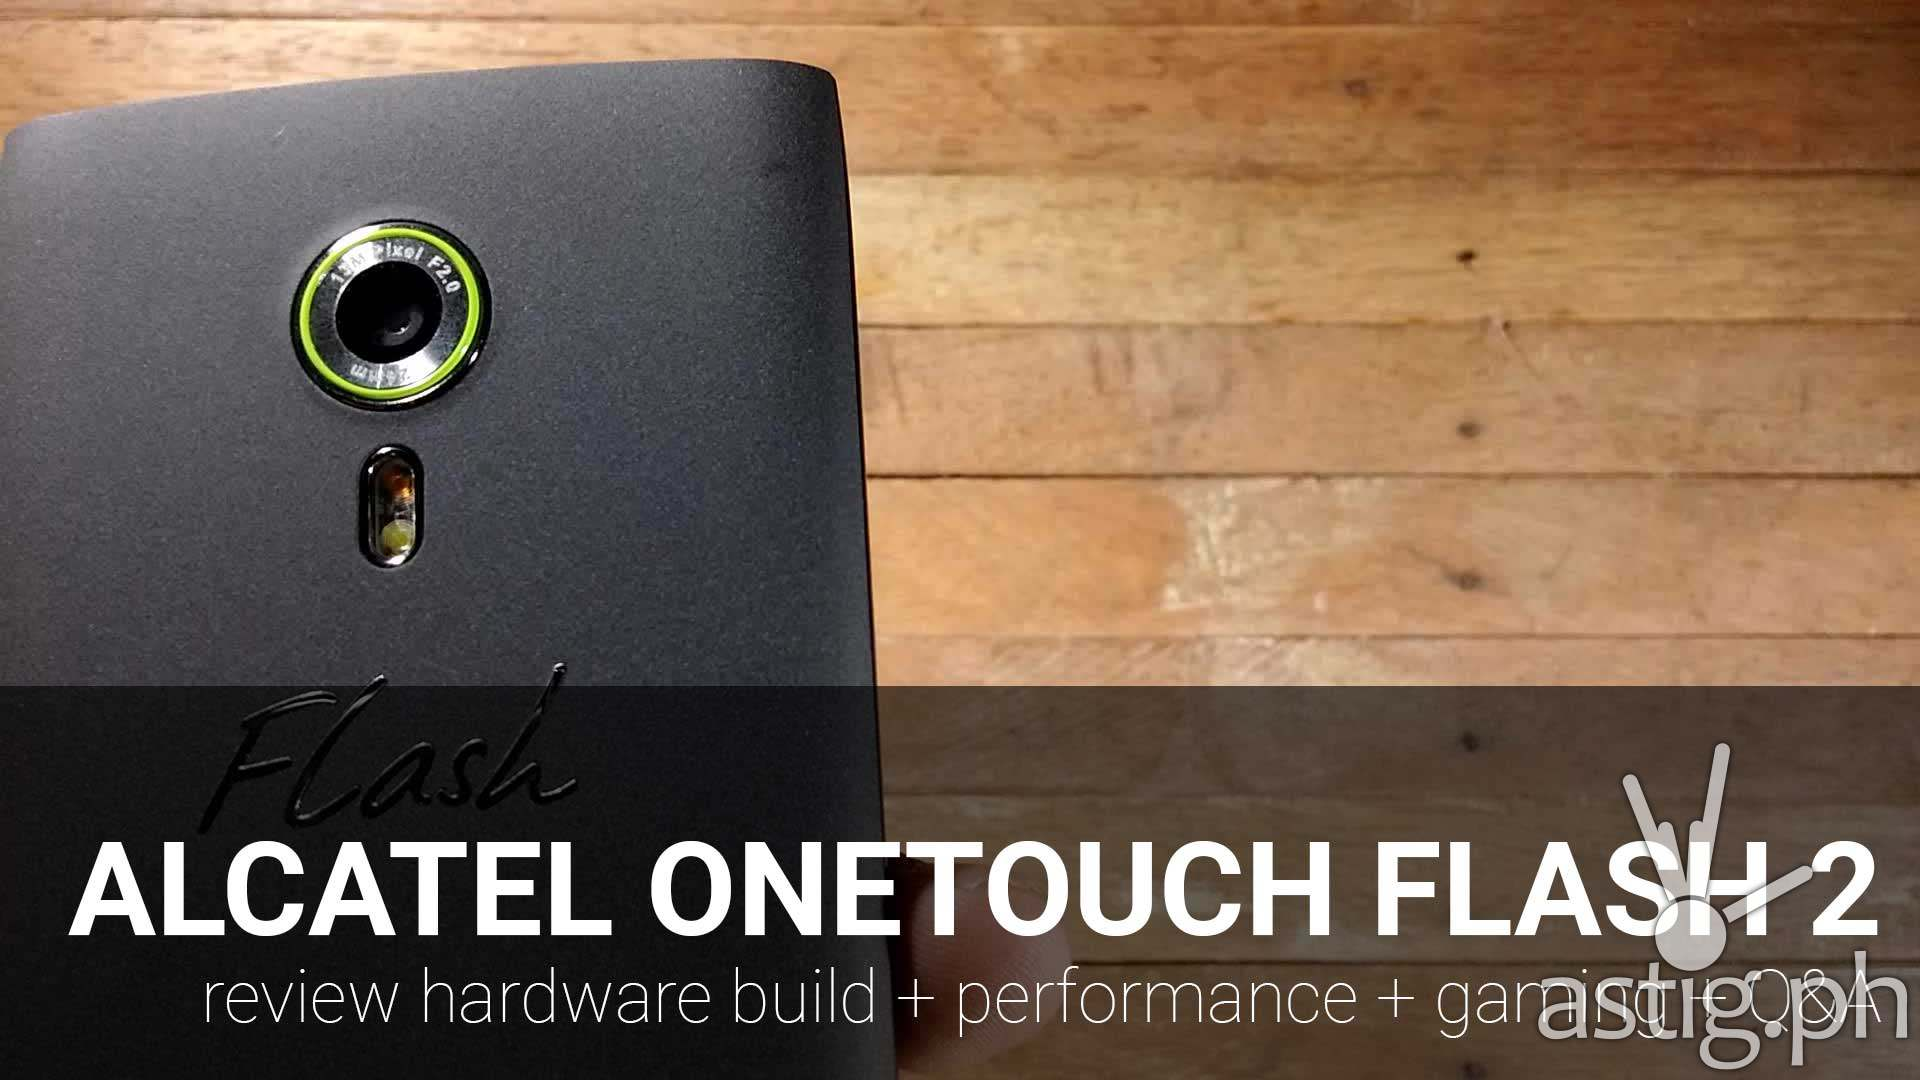 alcatel onetouch flash 2 review gaming performance hardware